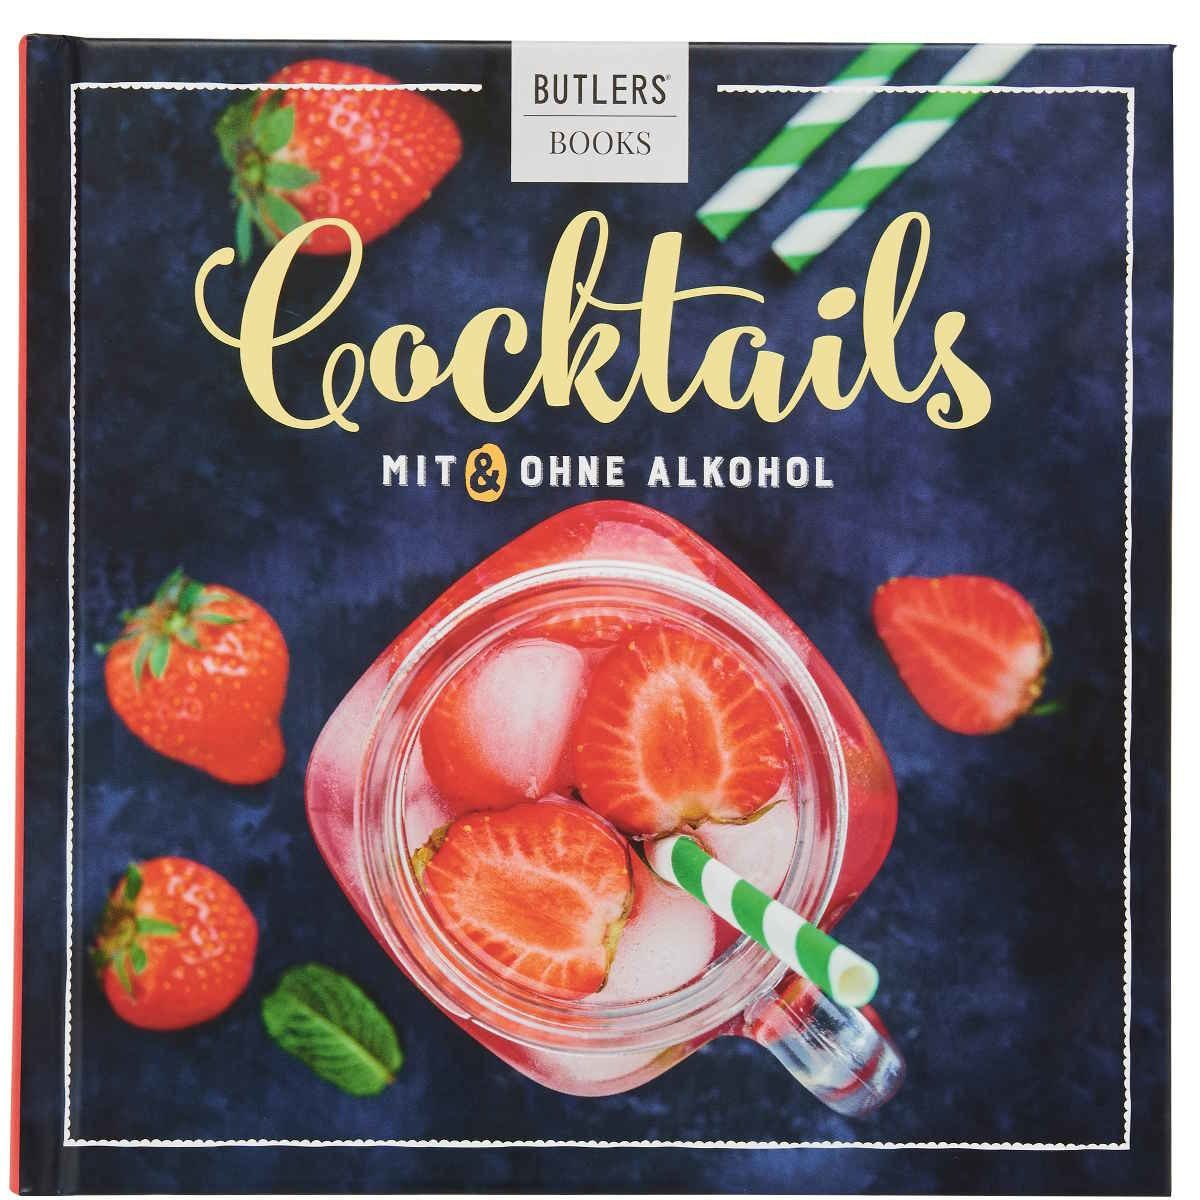 BUTLERS KOCHBUCH »Cocktails«